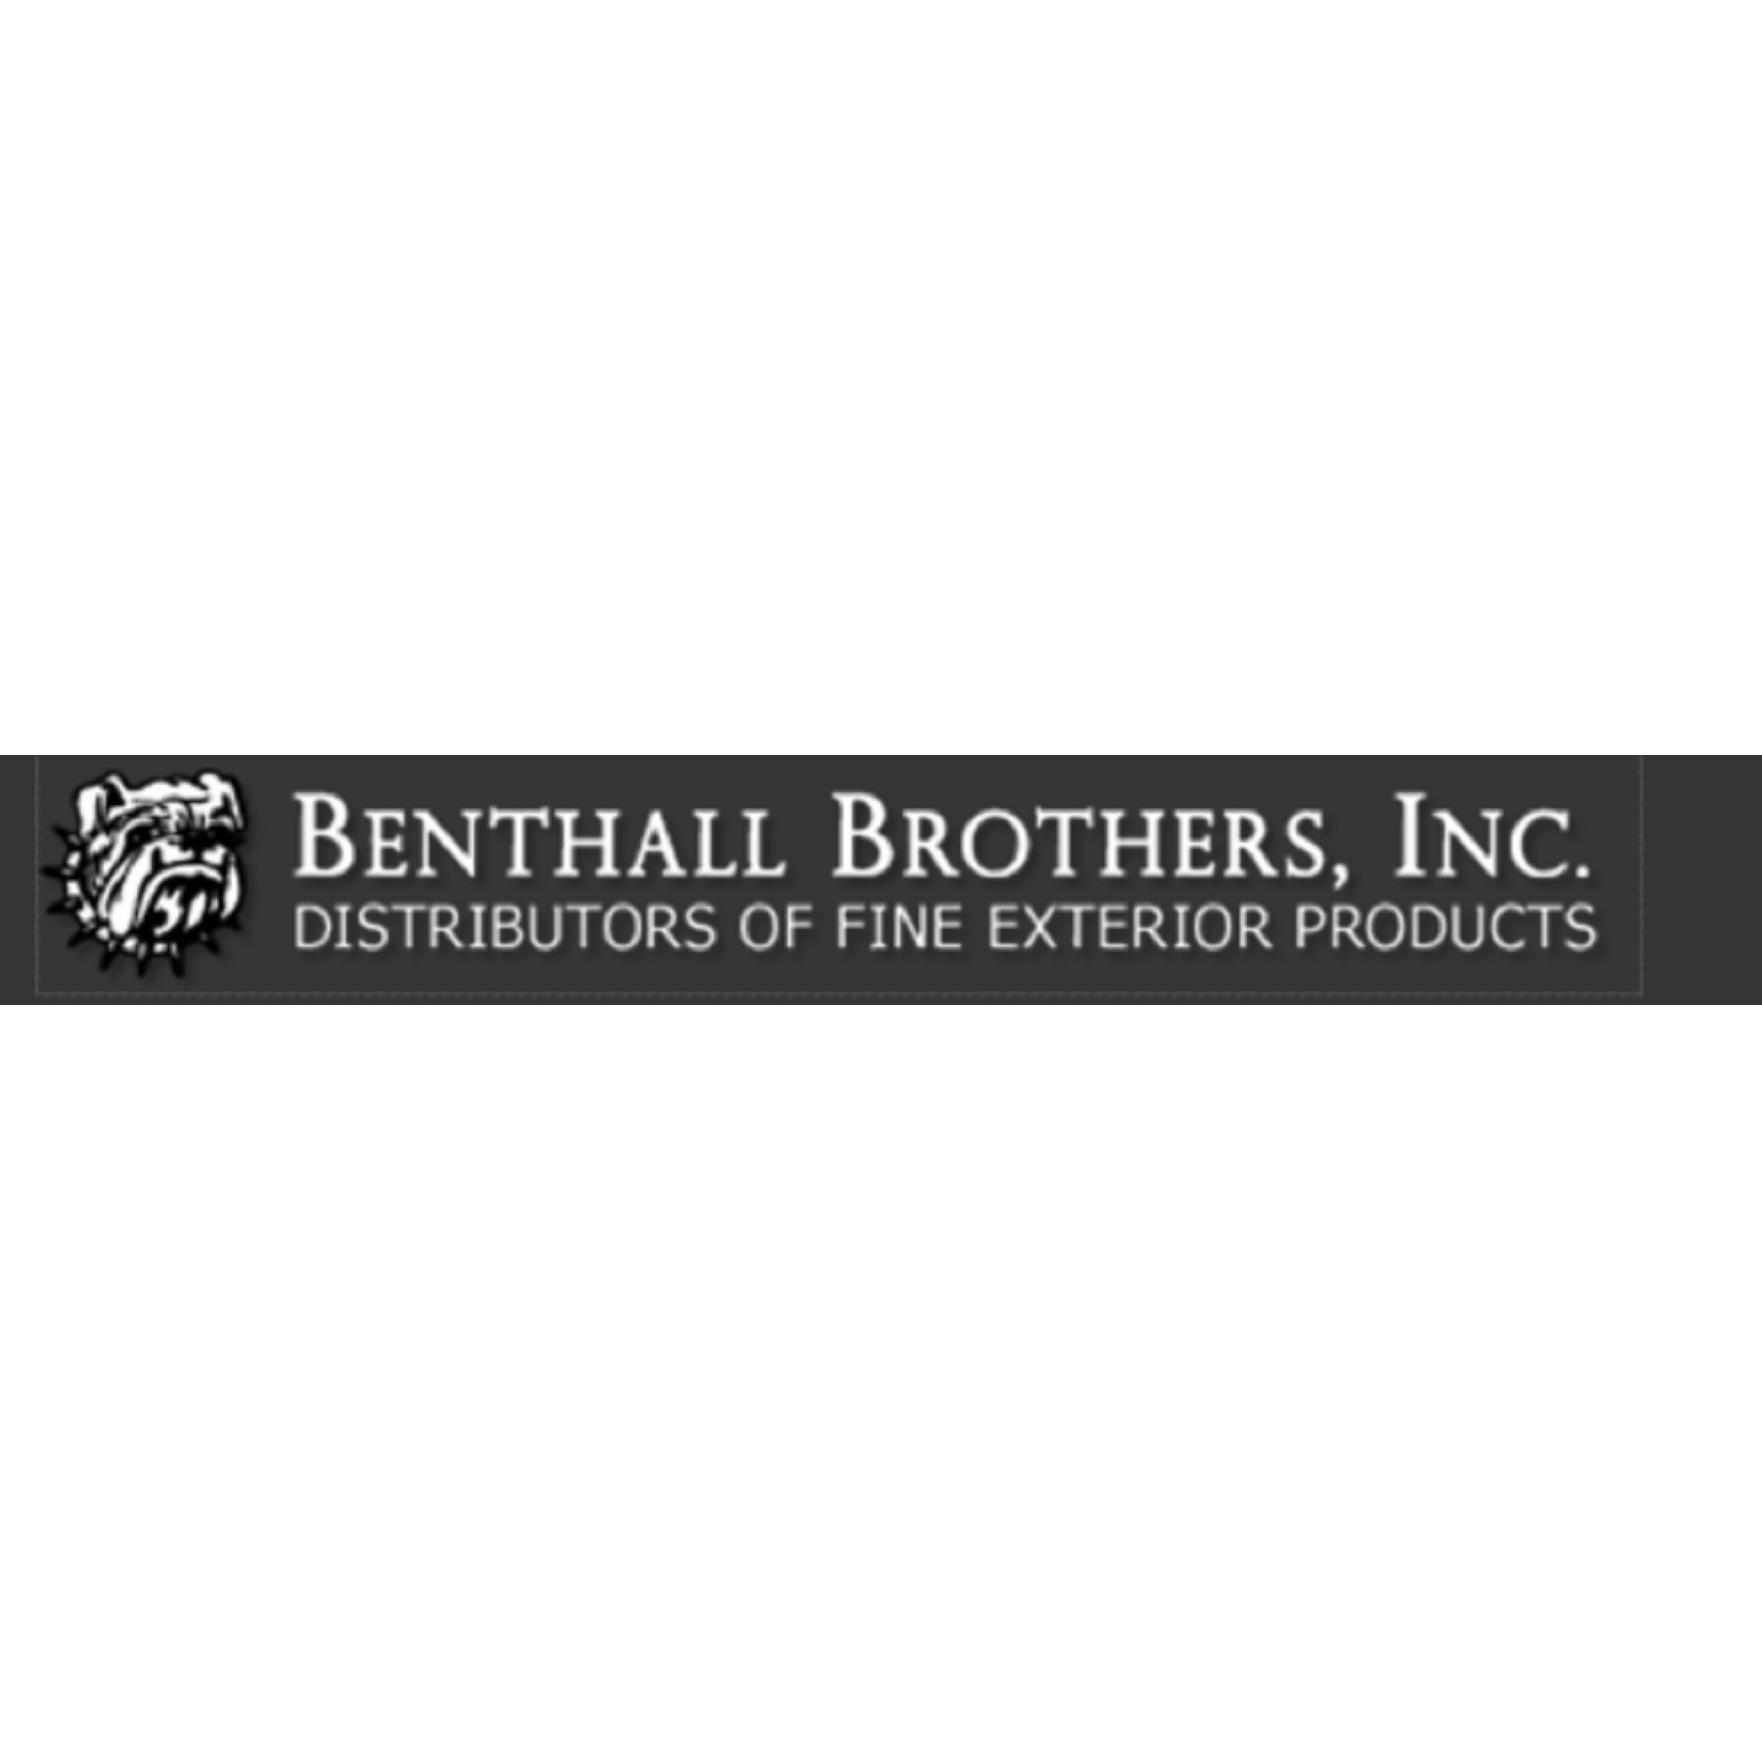 Benthall Brothers, Inc